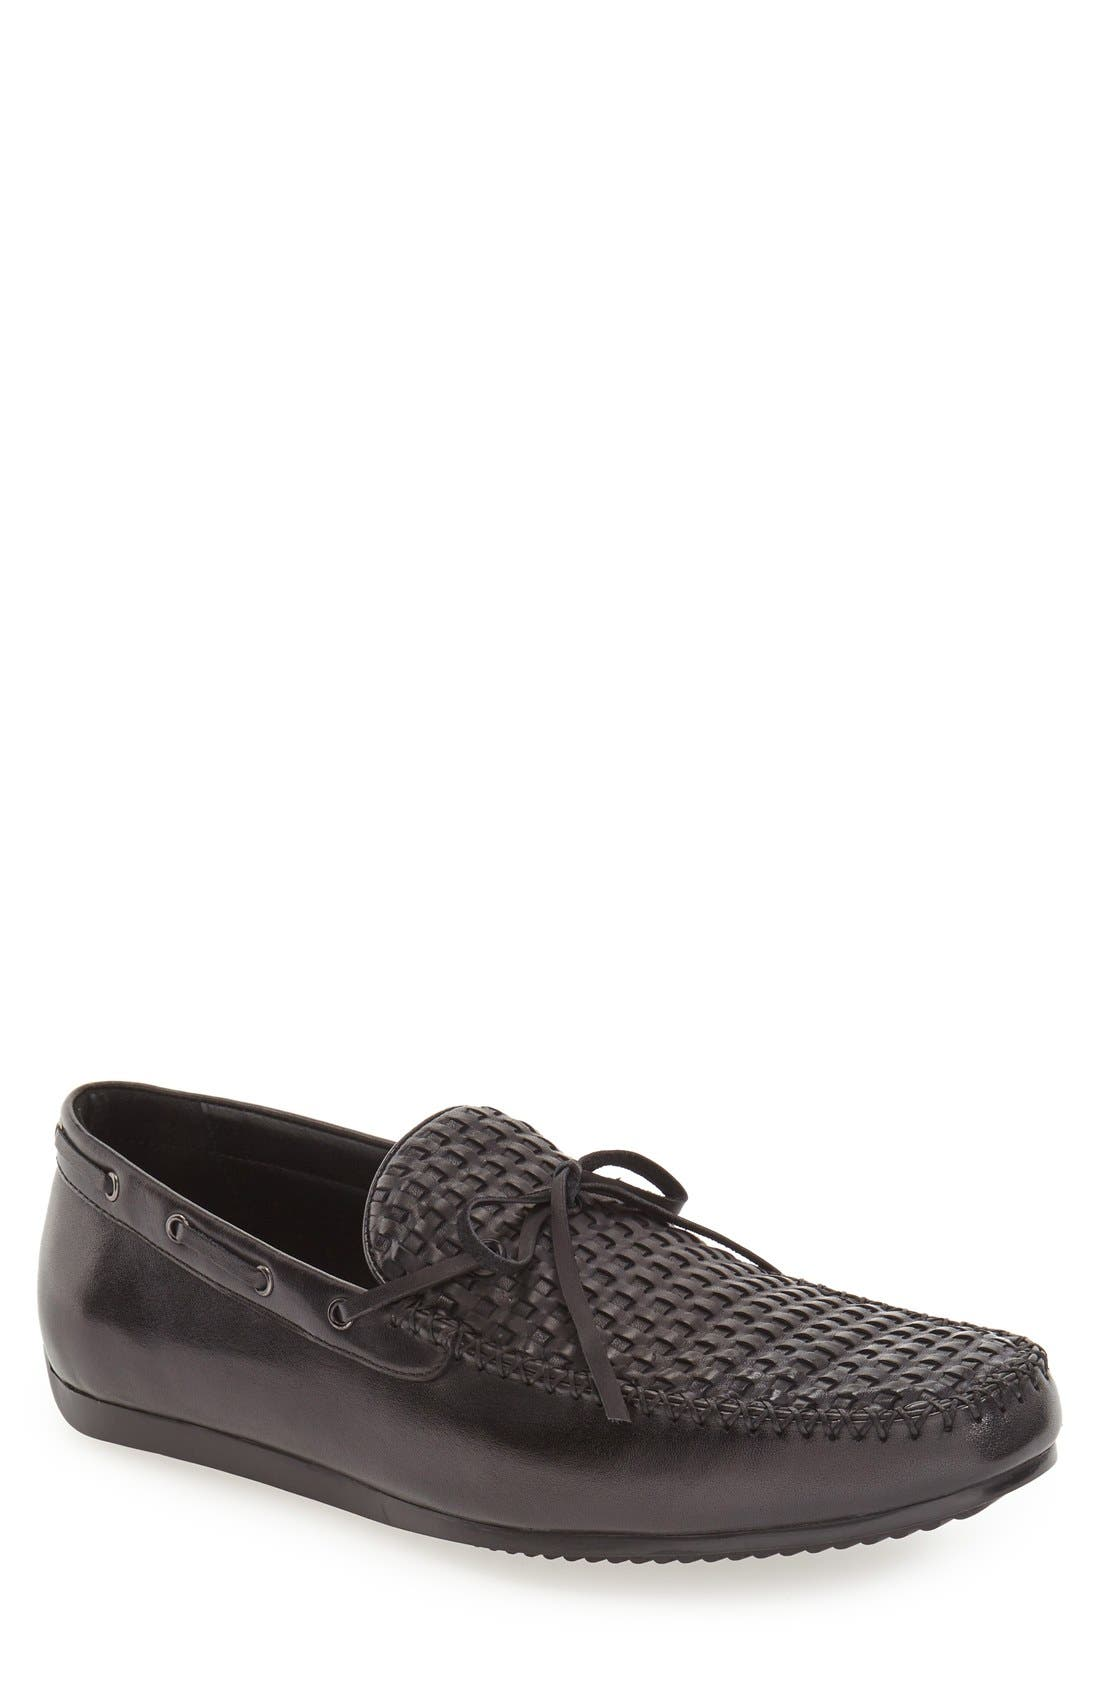 'Cezanne' Woven Tie Loafer,                         Main,                         color, BLACK